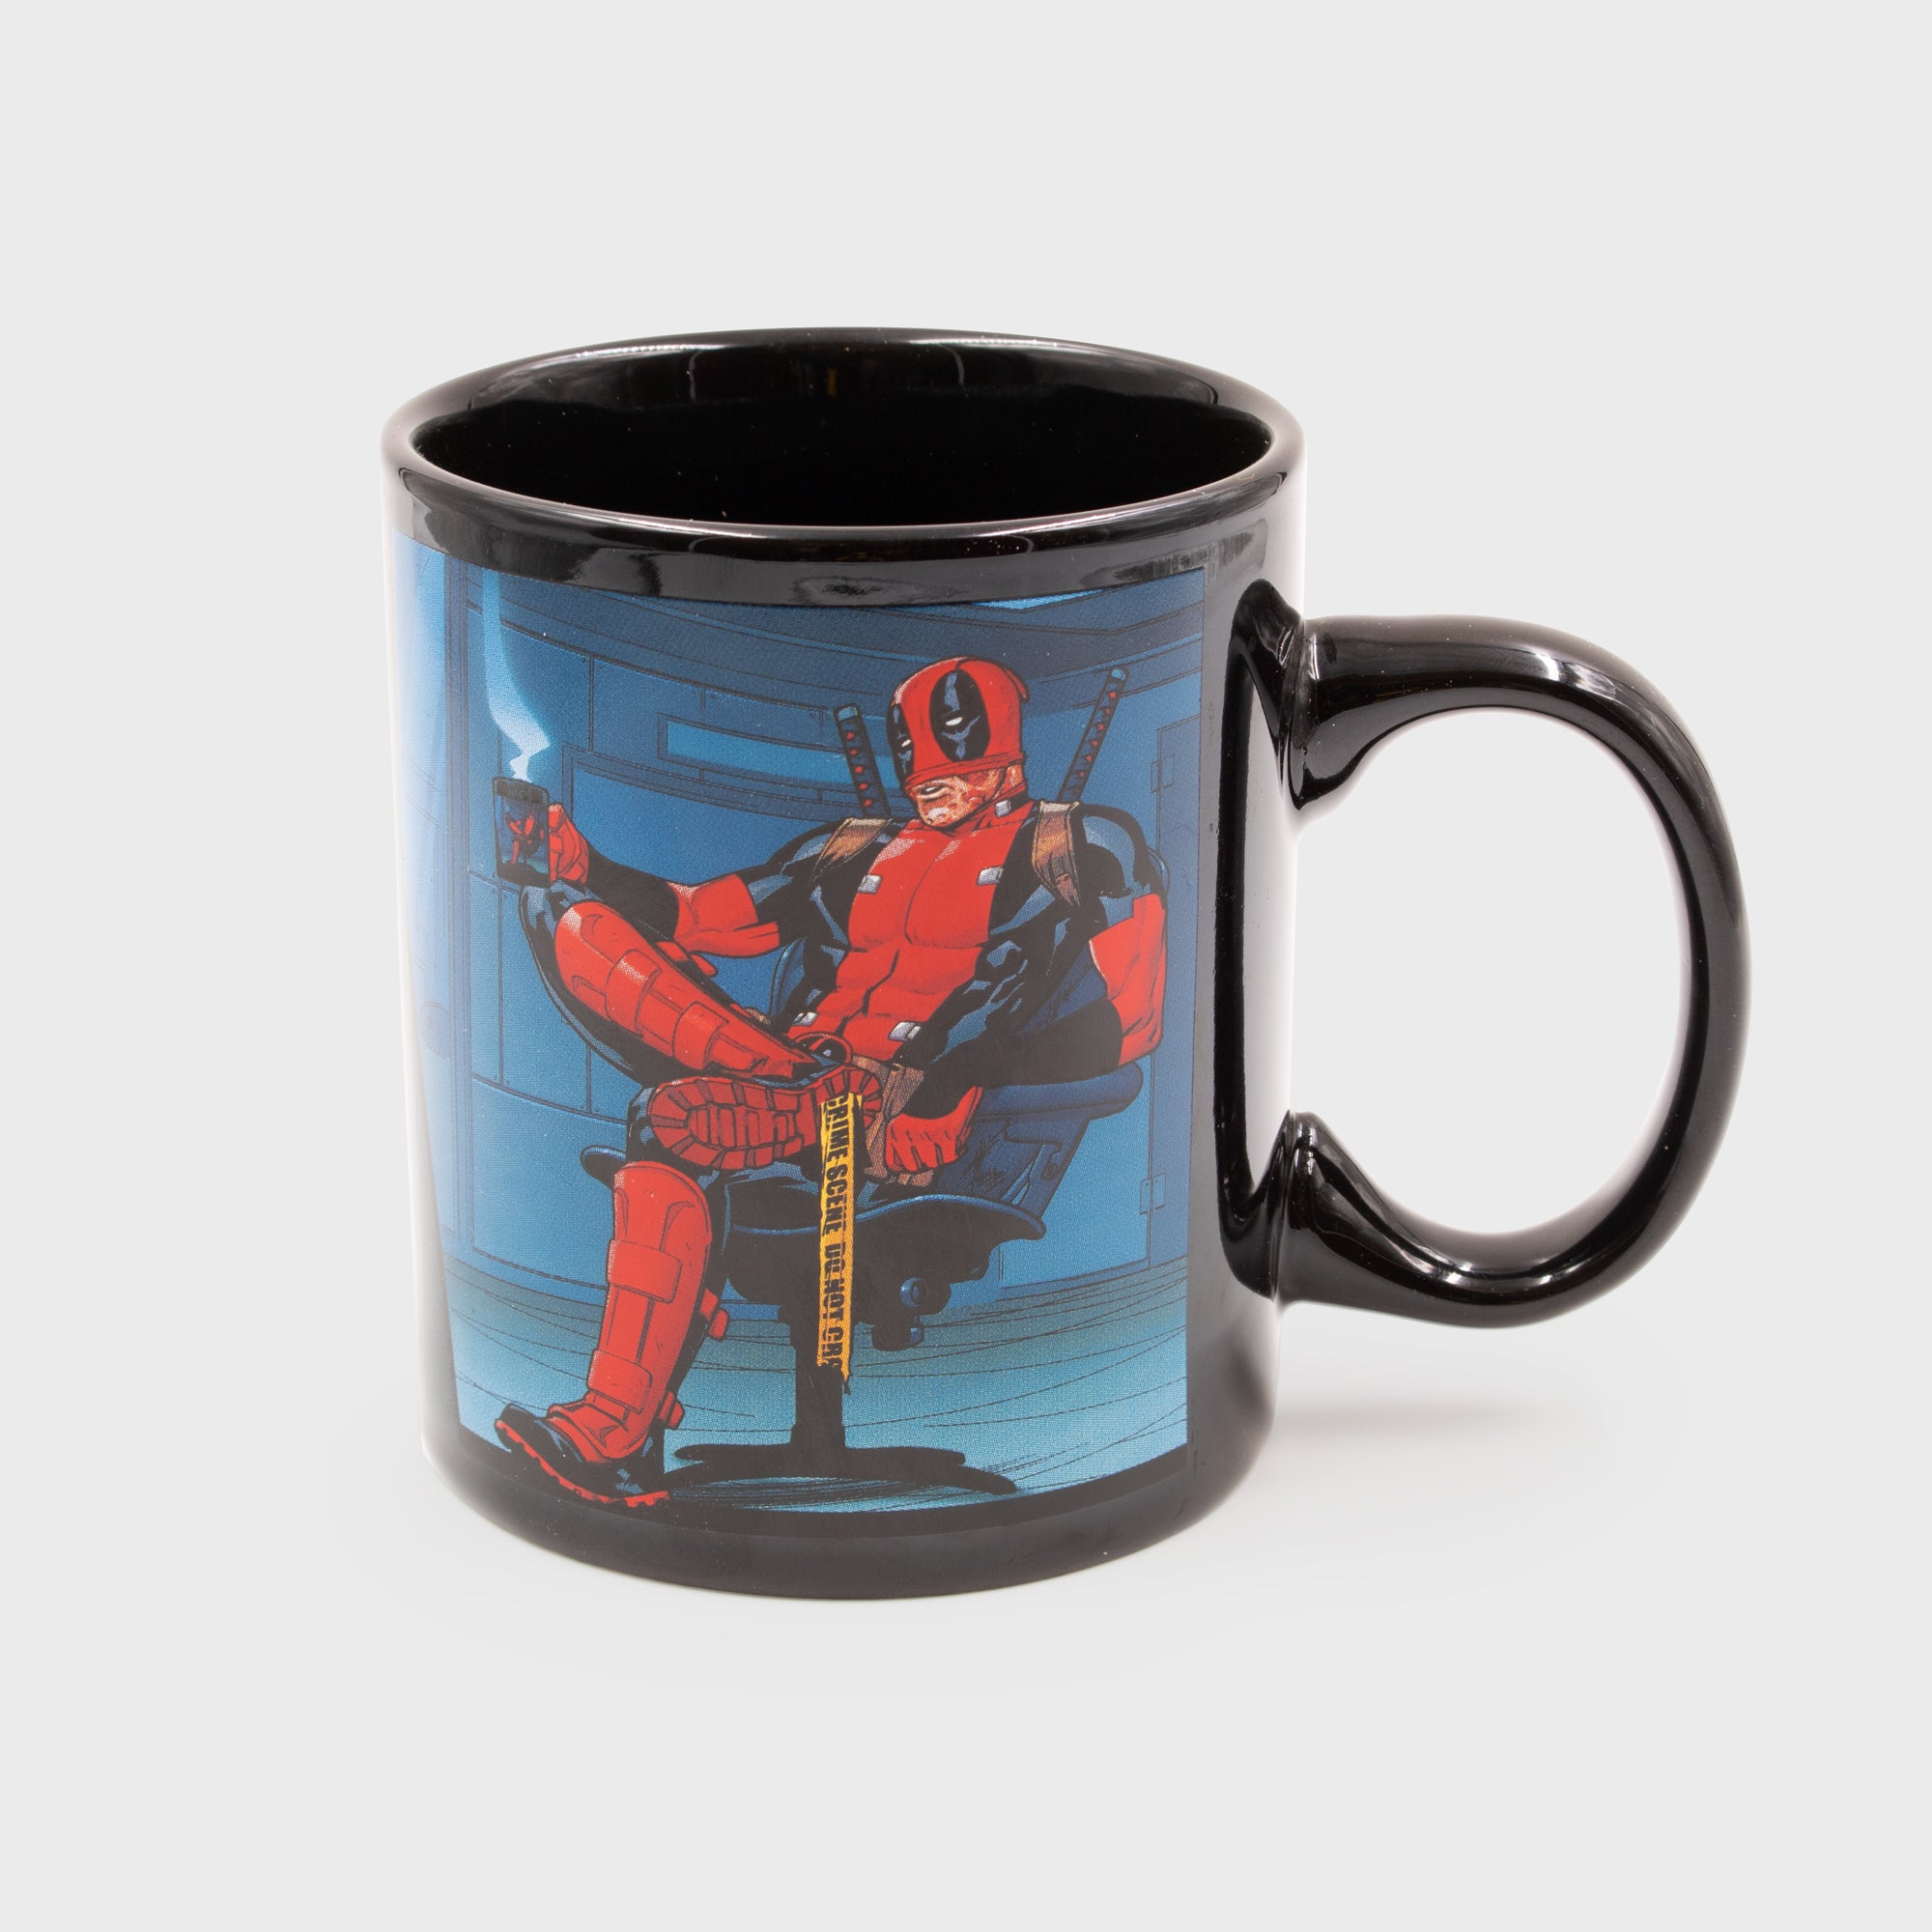 deadpool marvel superhero exclusive collector box collectible mug drinkware kitchenware culturefly